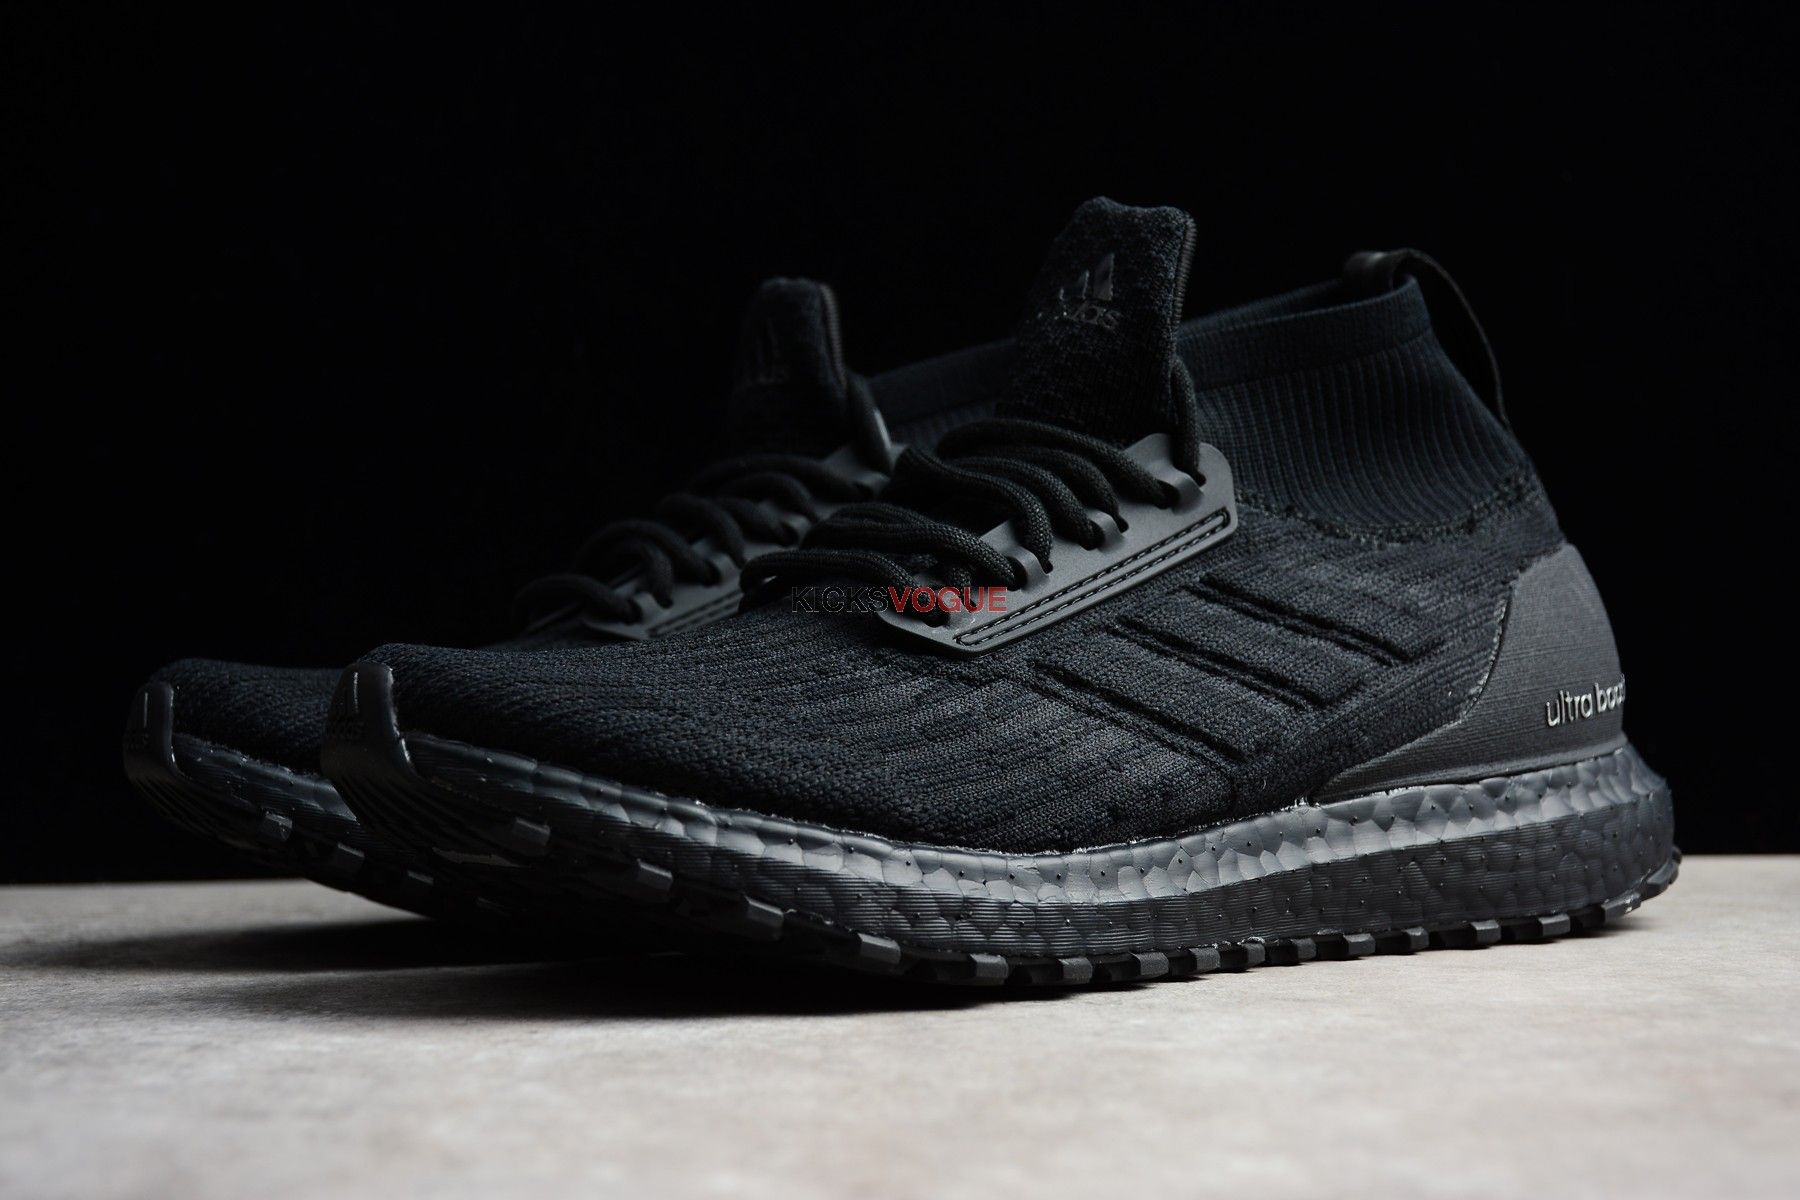 super popular d6cf6 d3cfc Adidas Ultra Boost Mid ATR Oreo Ltd